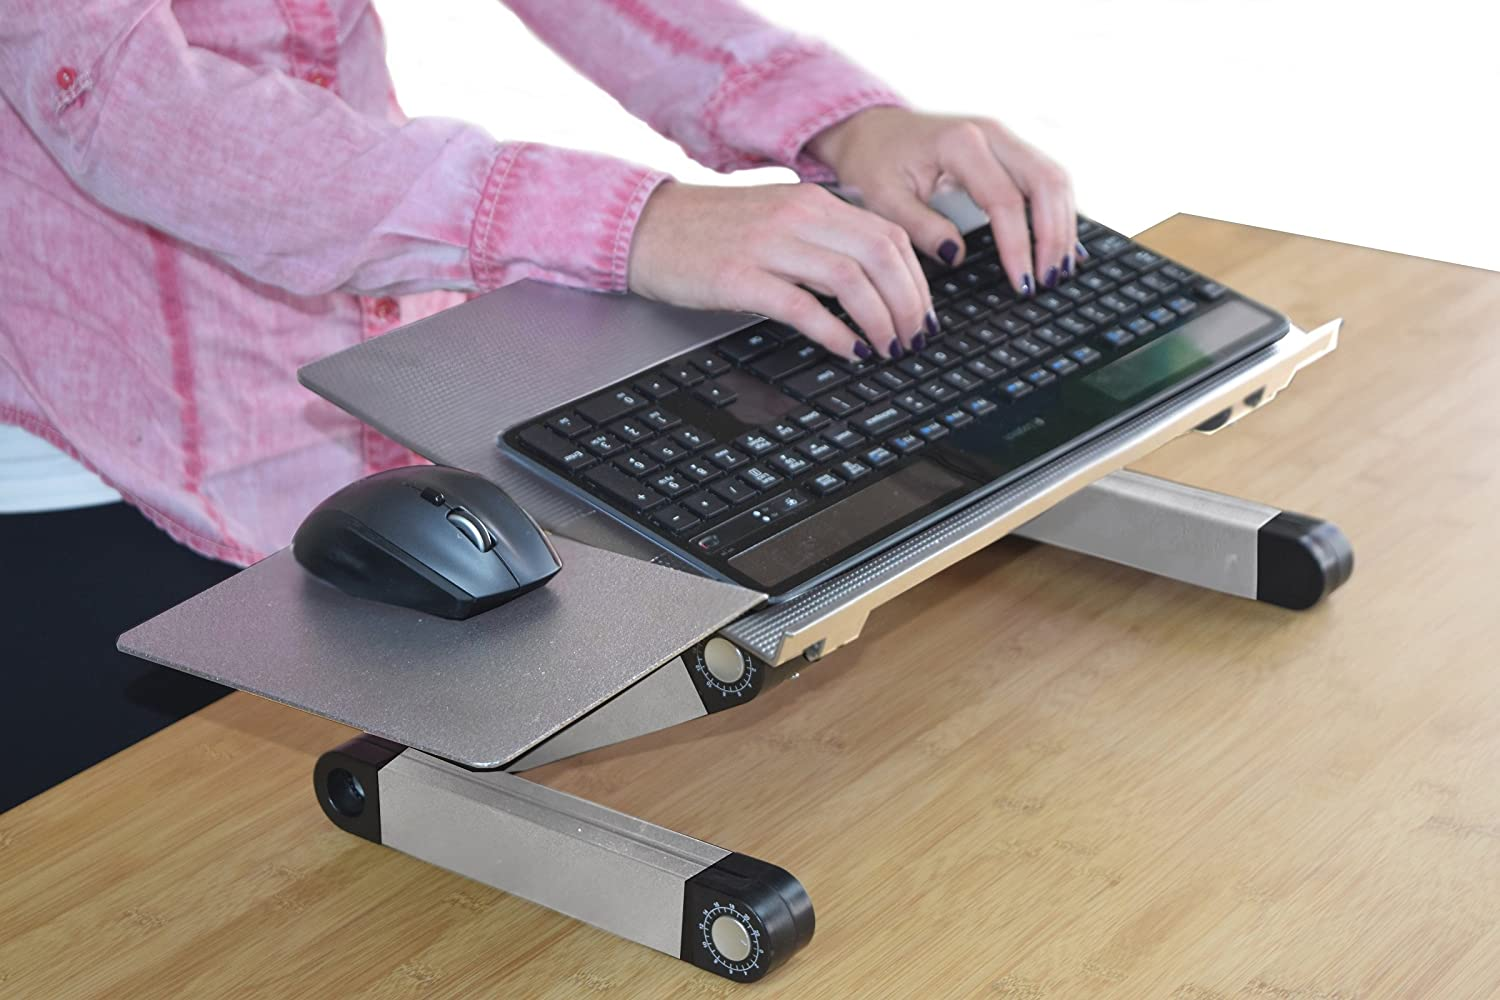 WorkEZ Keyboard Tray Stand Up Adjustable Height & Angle Ergonomic Computer Keyboard Riser For Standing. Portable, Negative Tilt Ambidextrous Mouse Pad Uncaged Ergonomics WEKTs